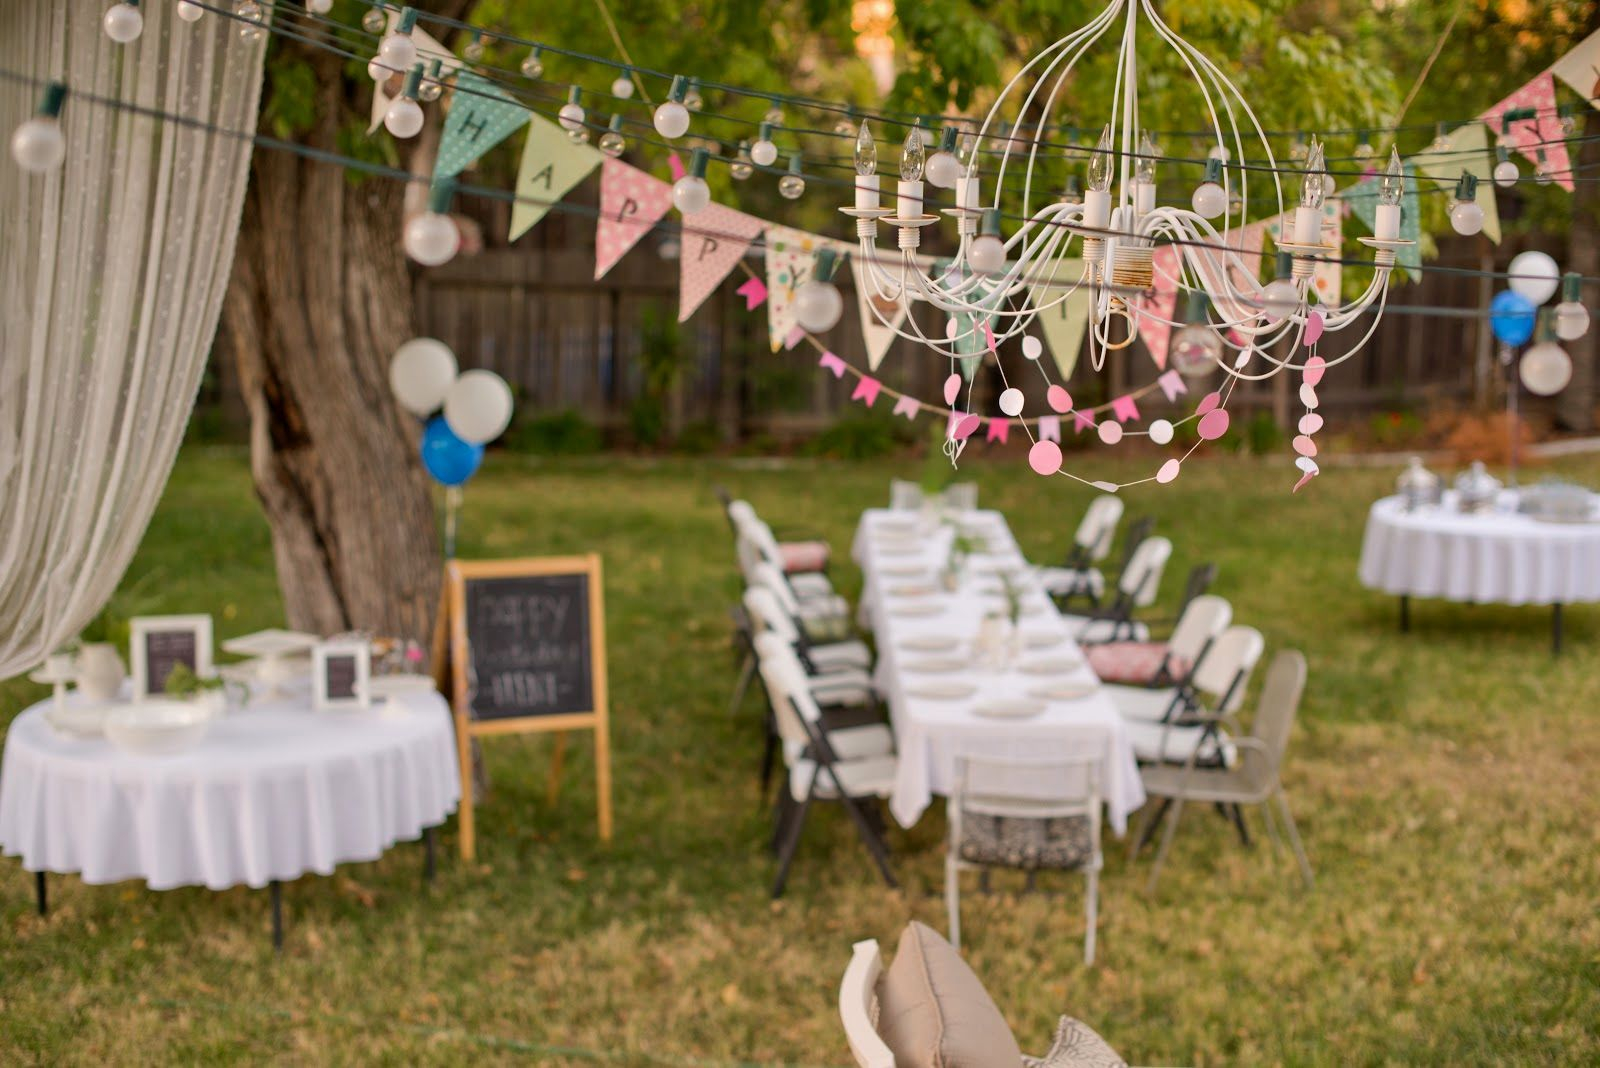 Outdoor Party Decor For Adults Gembloongdecor Outdoor Decor In pertaining to 14 Some of the Coolest Ways How to Makeover Backyard Party Decoration Ideas